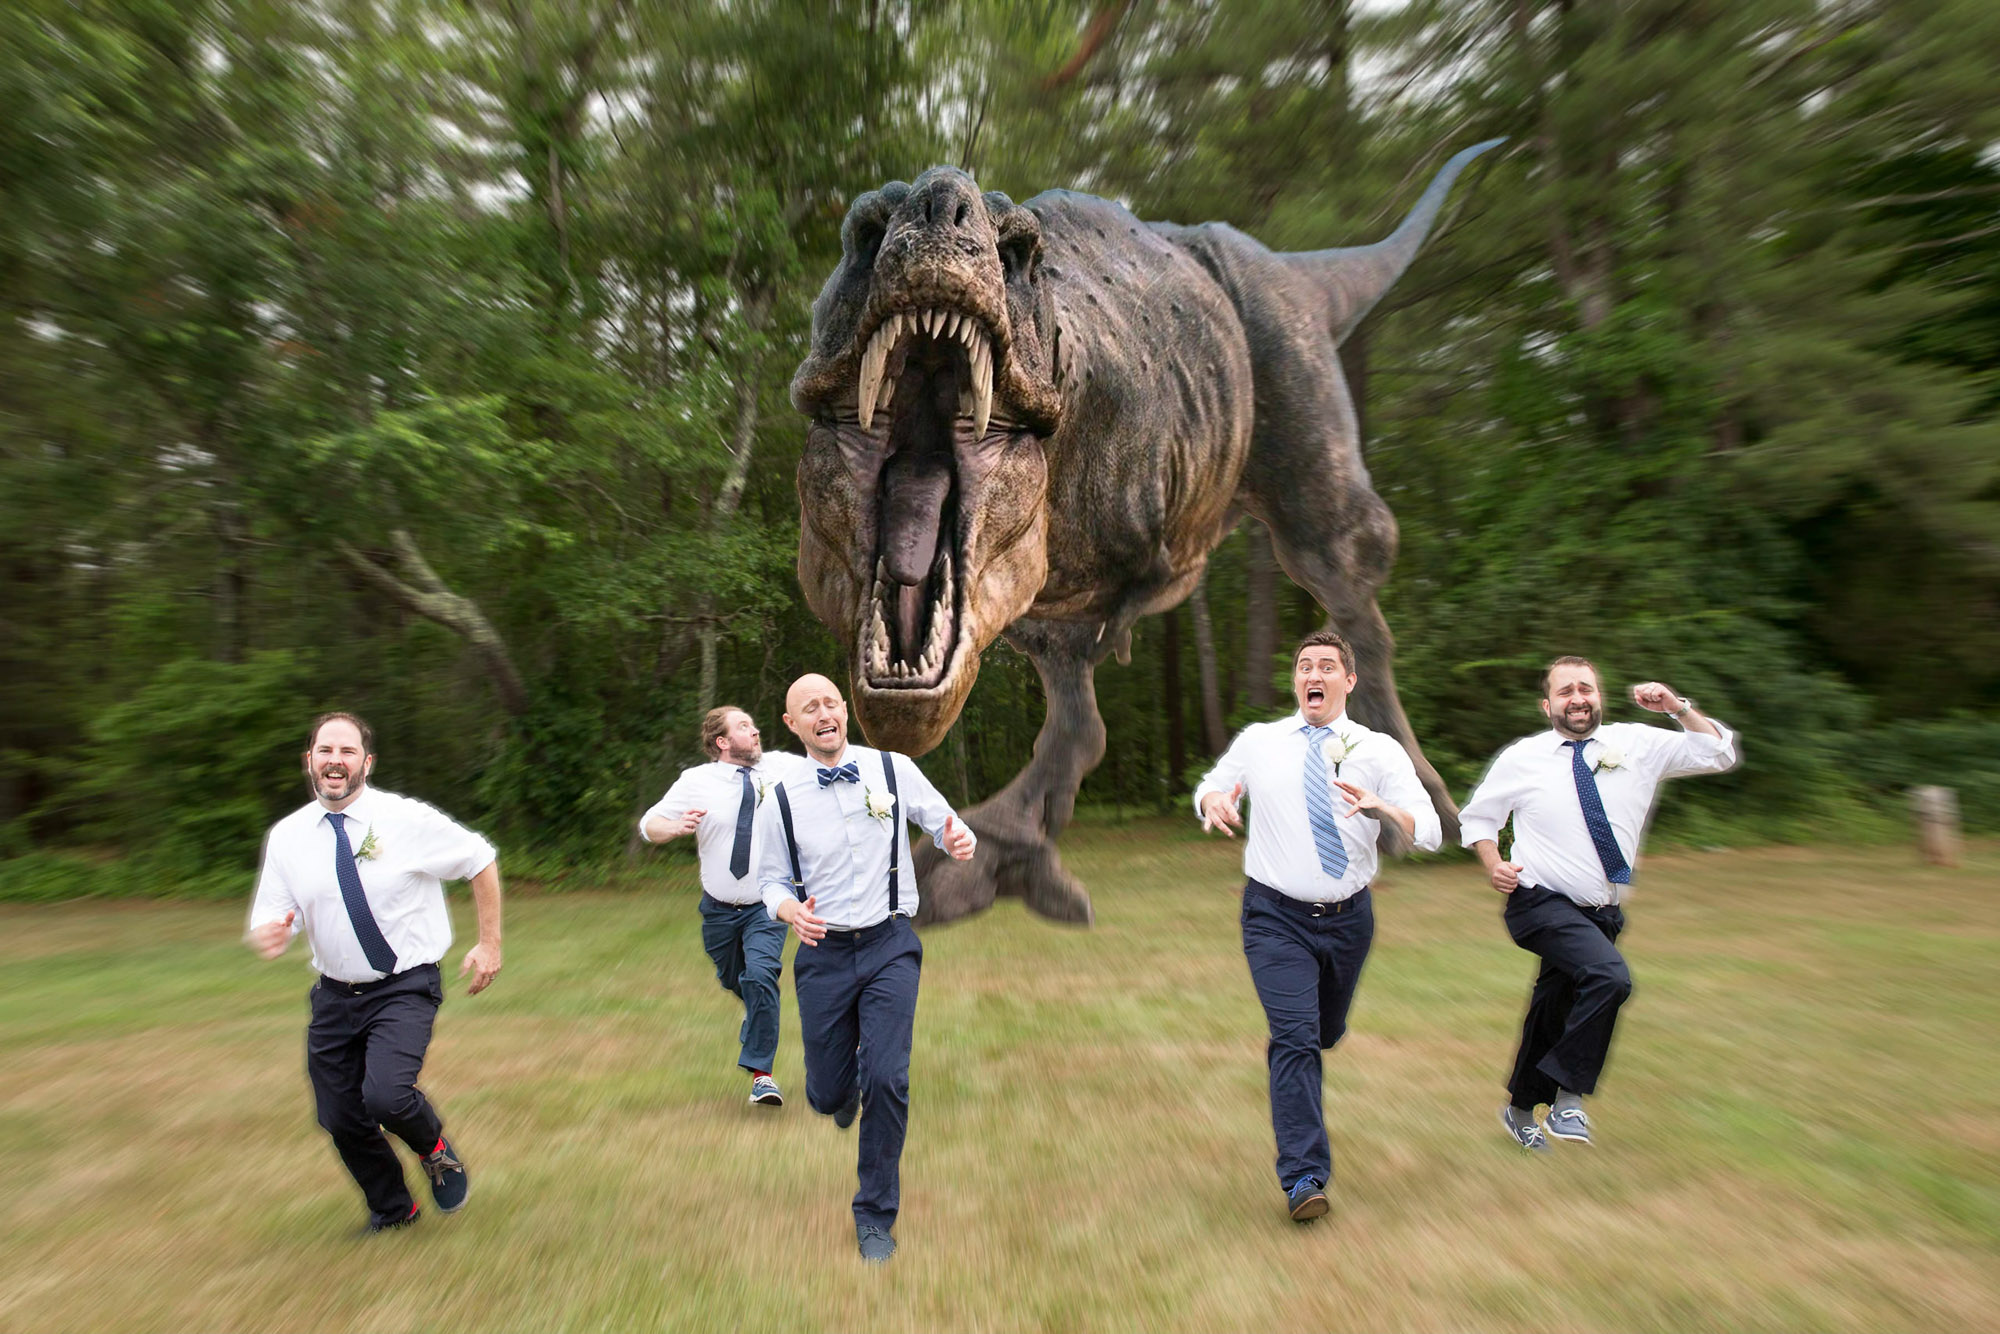 boston-wedding-photographer-26-north-studios-dinosaur-bridal-party-photo.jpg